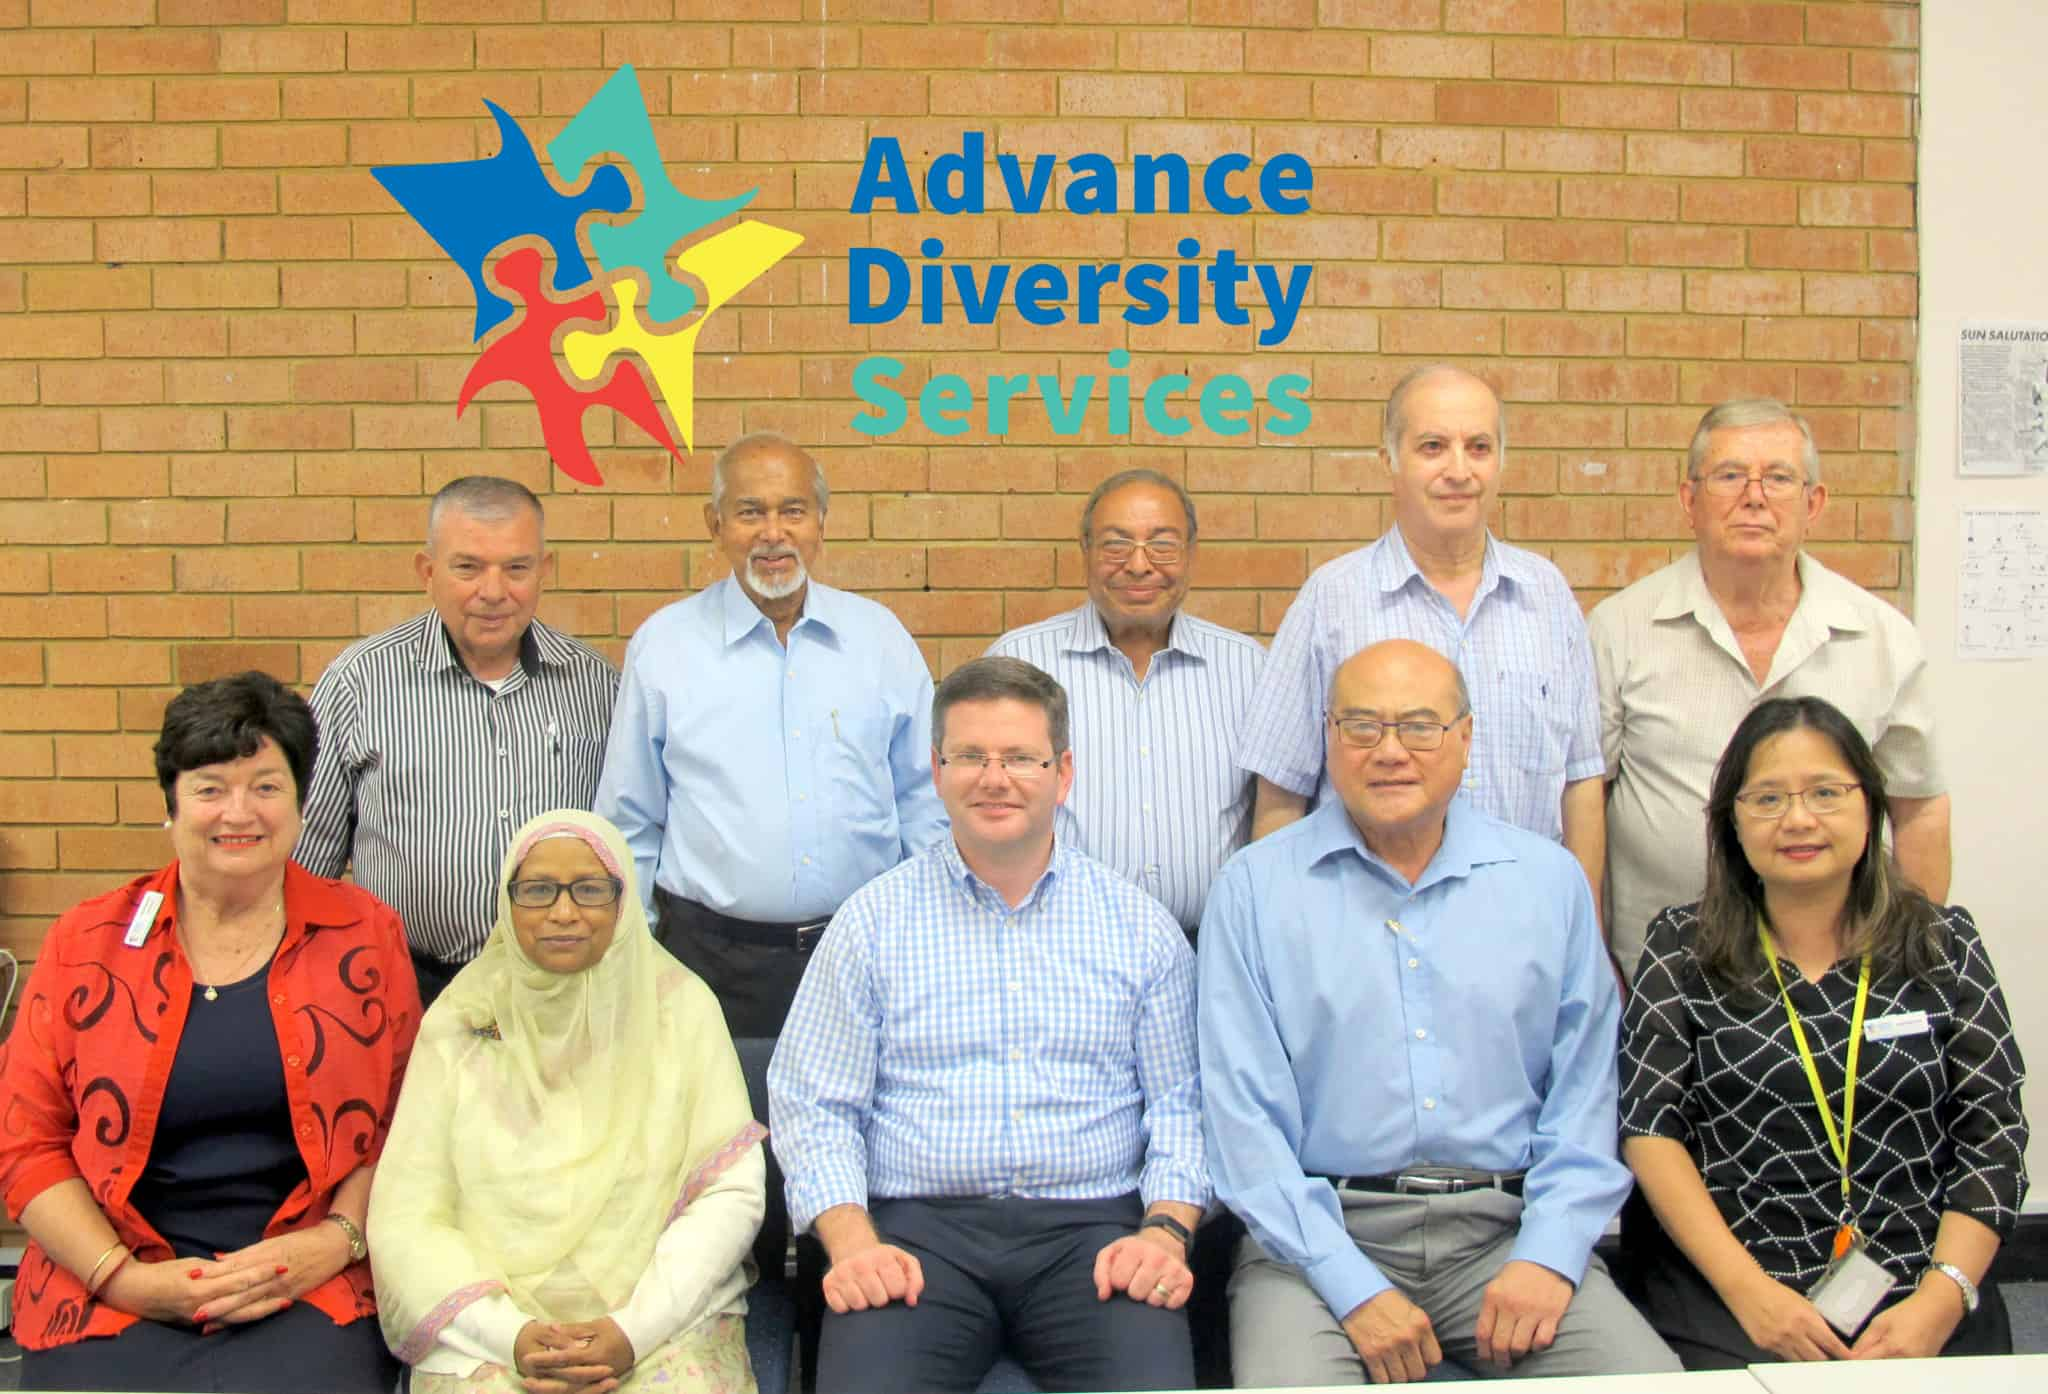 The Advance Diversity Services Board of Directors were very honoured to receive a visit from Mr Mark Coure MP this afternoon.